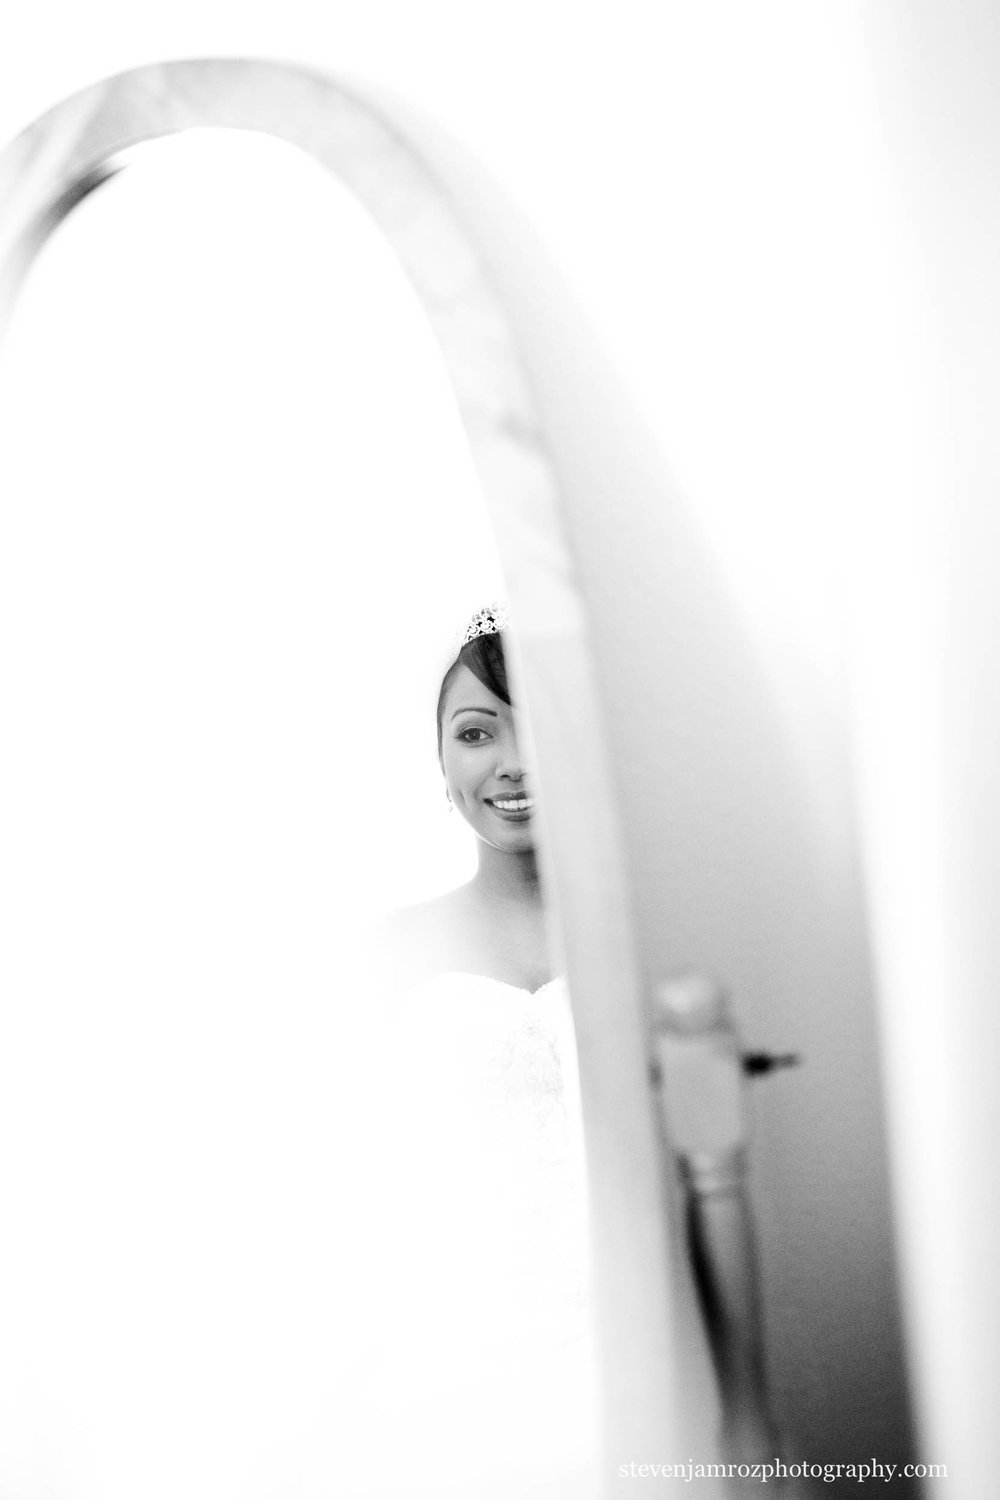 bride-in-mirror-raleigh-nc-steven-jamroz-photography-0189.jpg